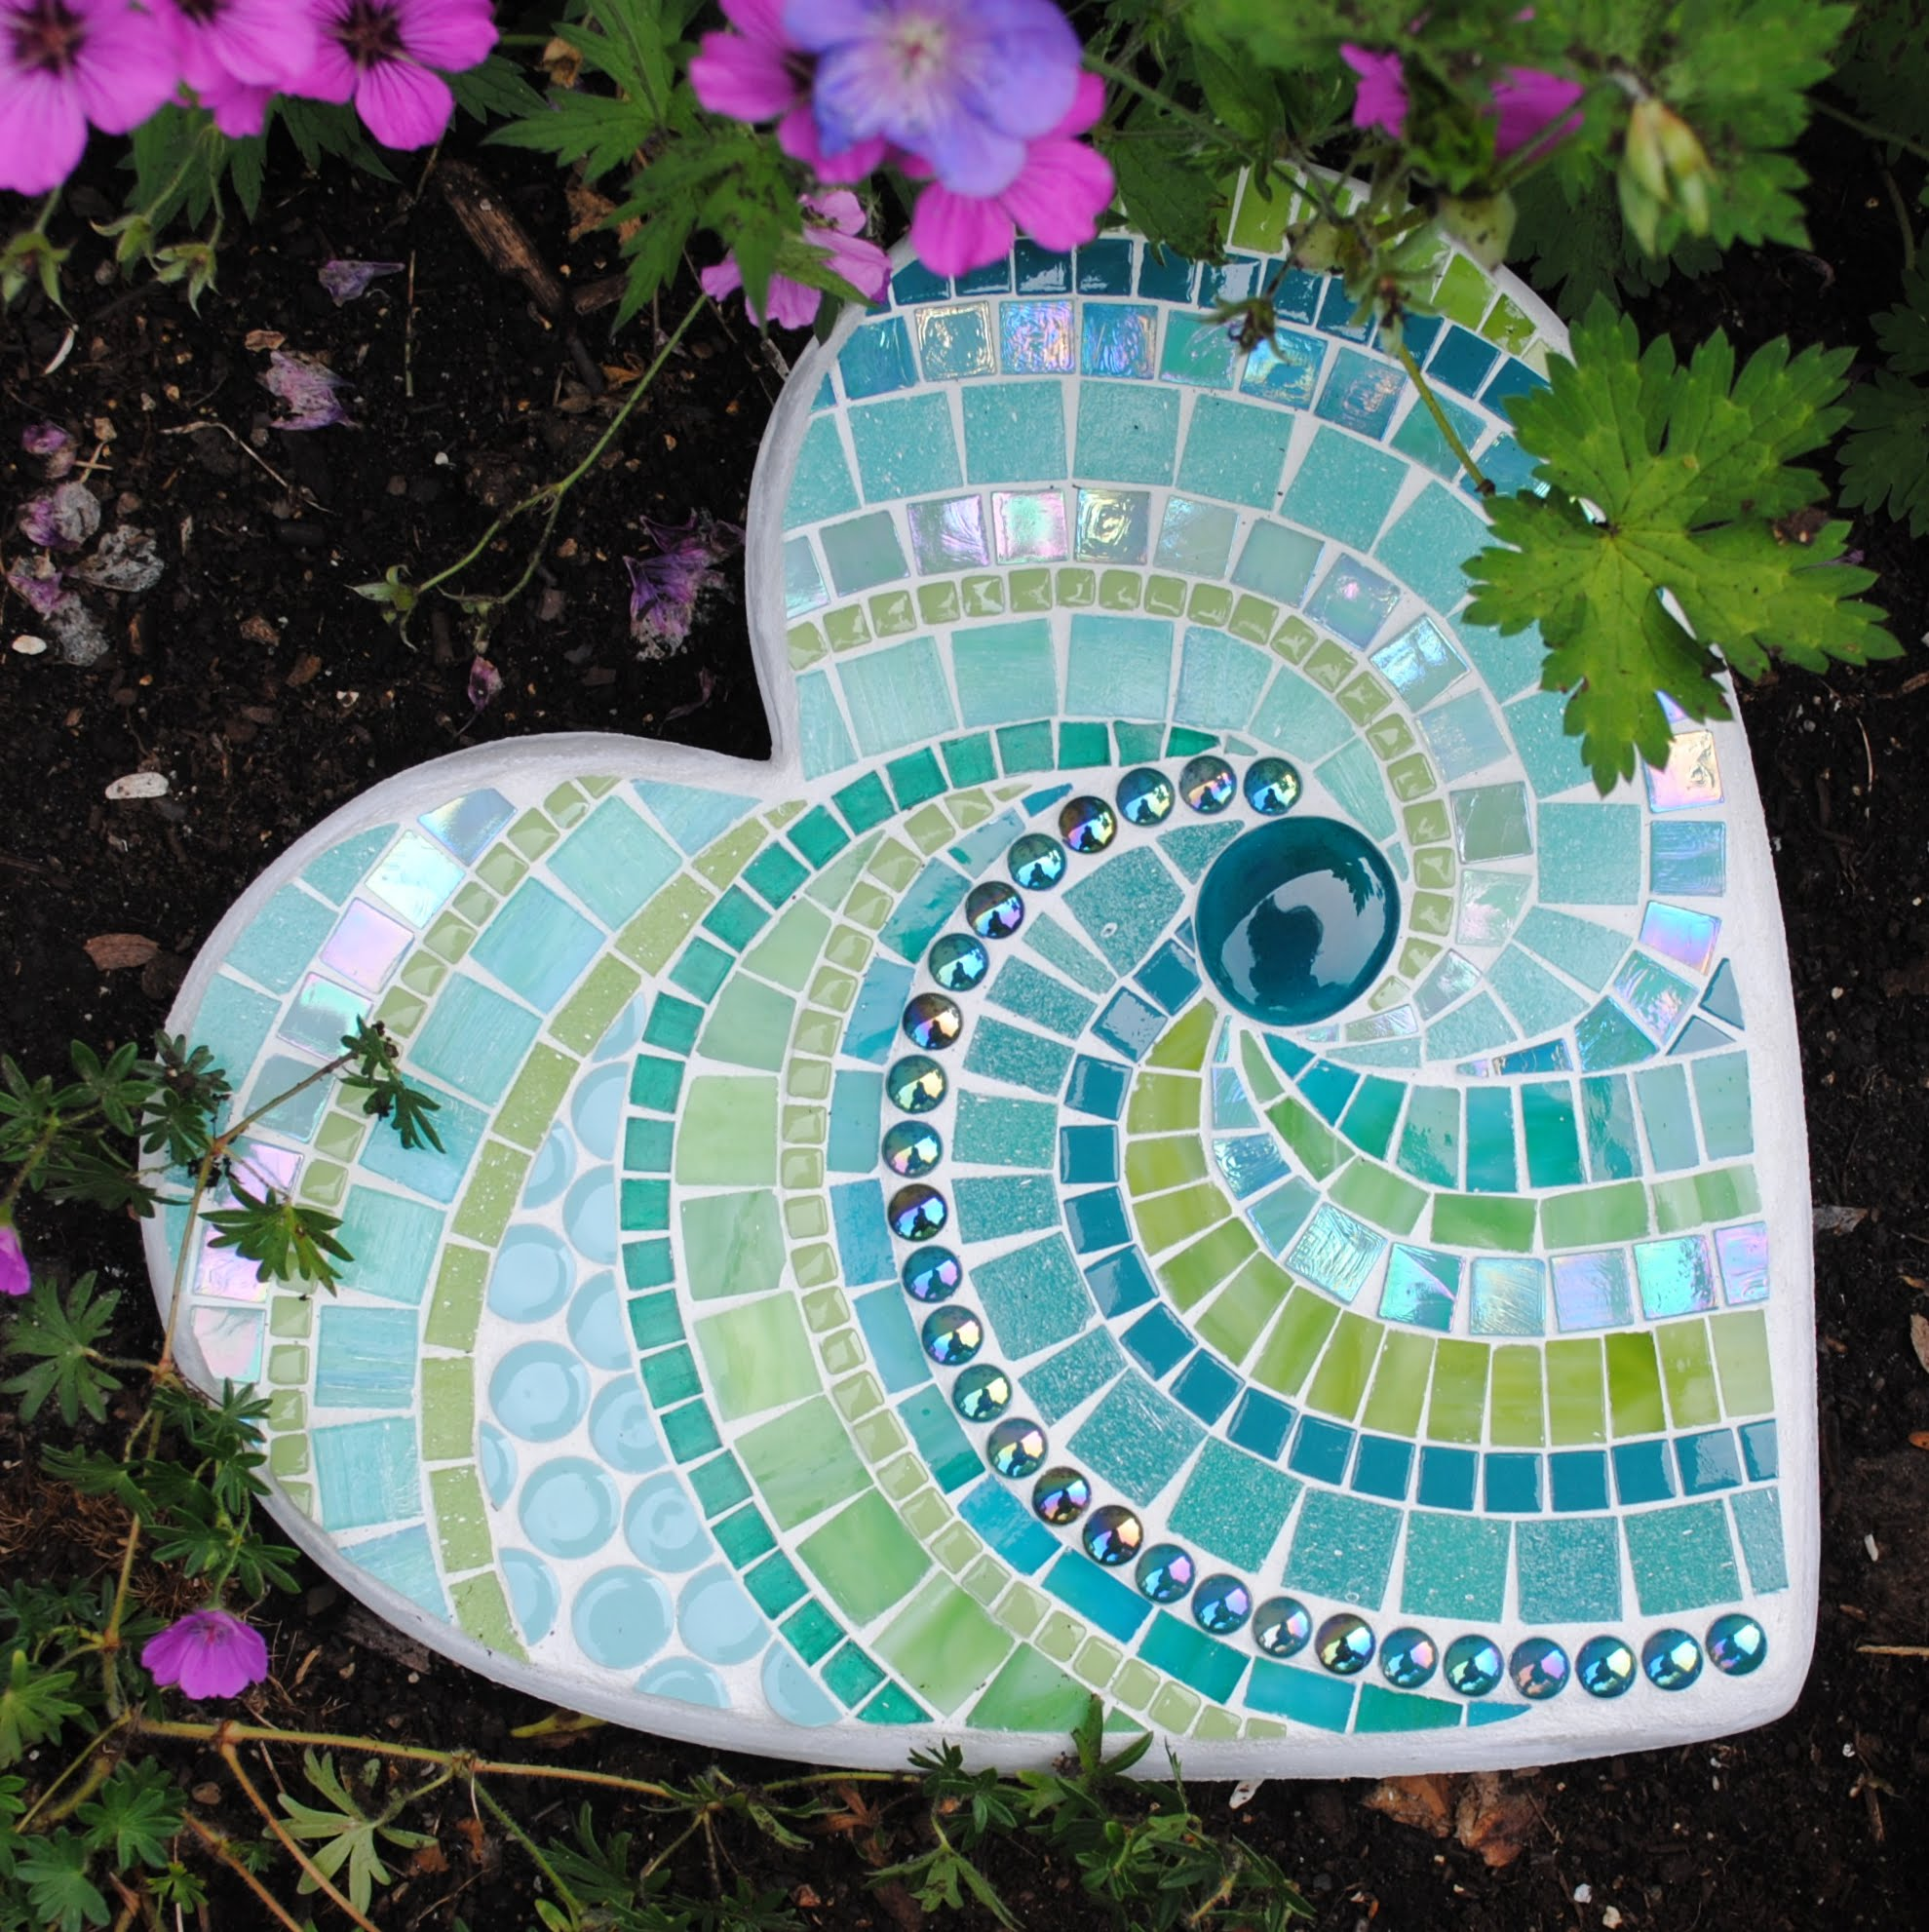 Tropical rainforest large mosaic stepping stone moo5096 for Garden mosaics designs